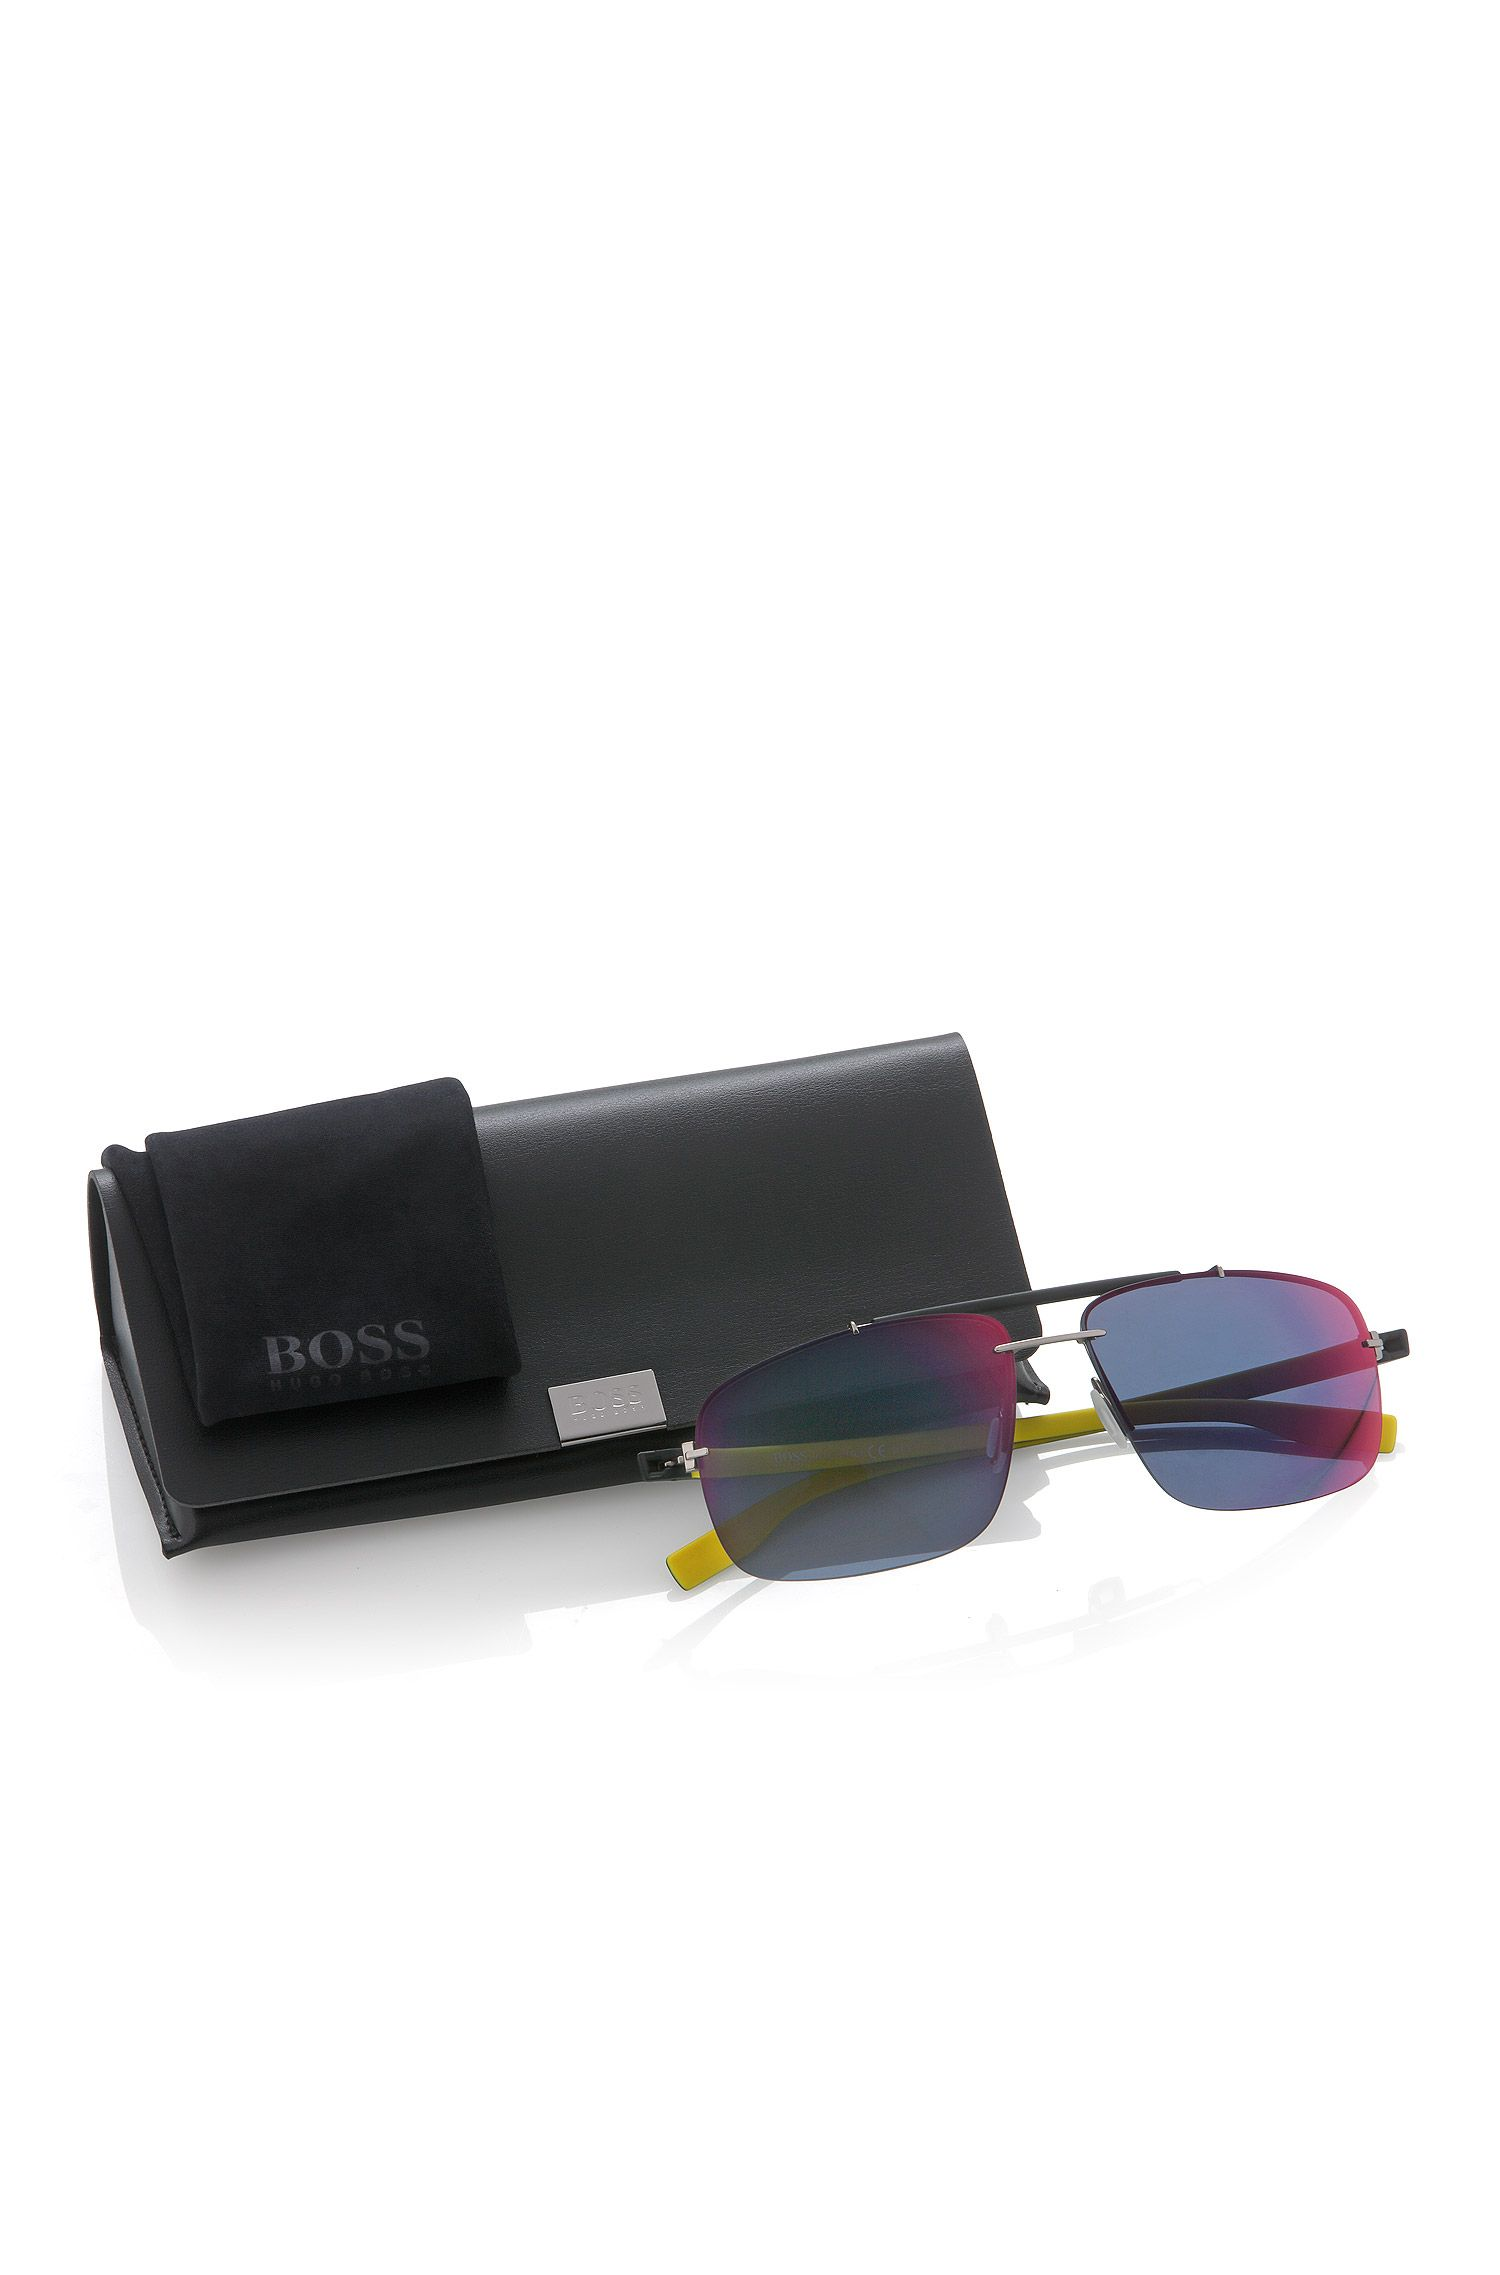 Sunglasses 'BOSS 0608/S', International Collection